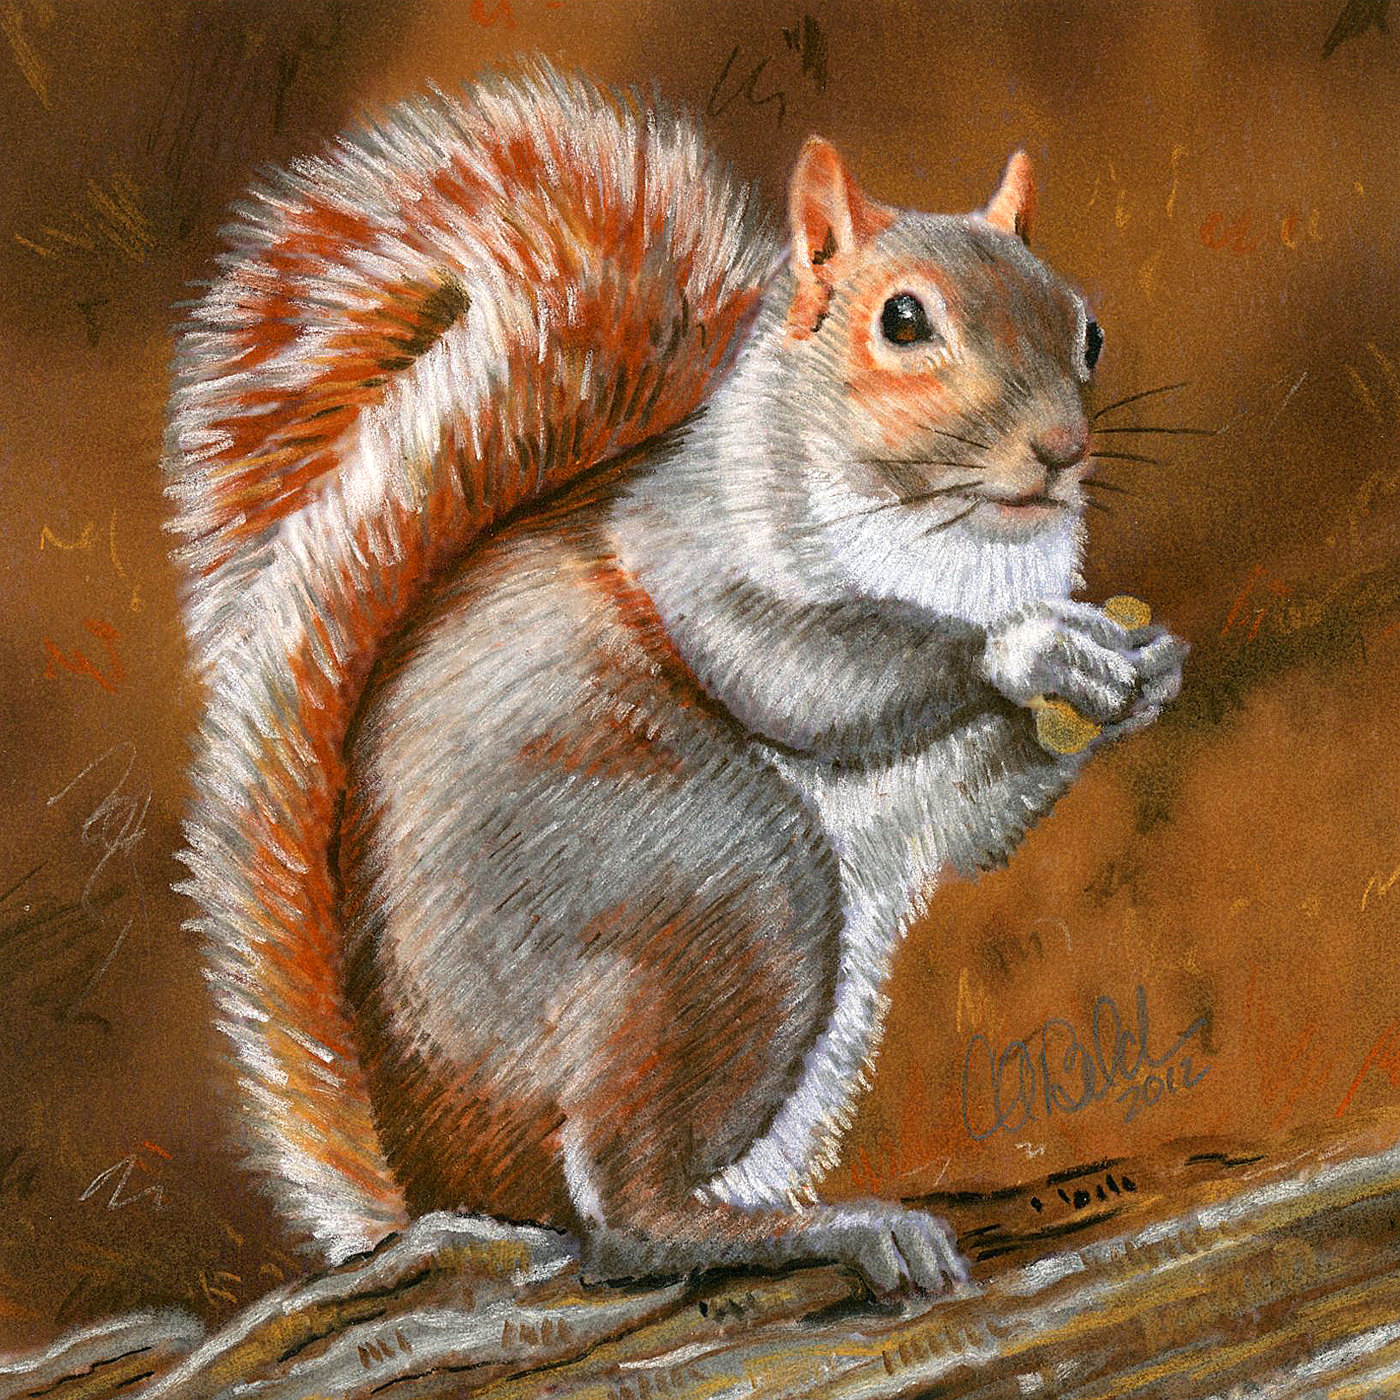 Drawn squirrel red squirrel Framed Red Squirrel Archival of